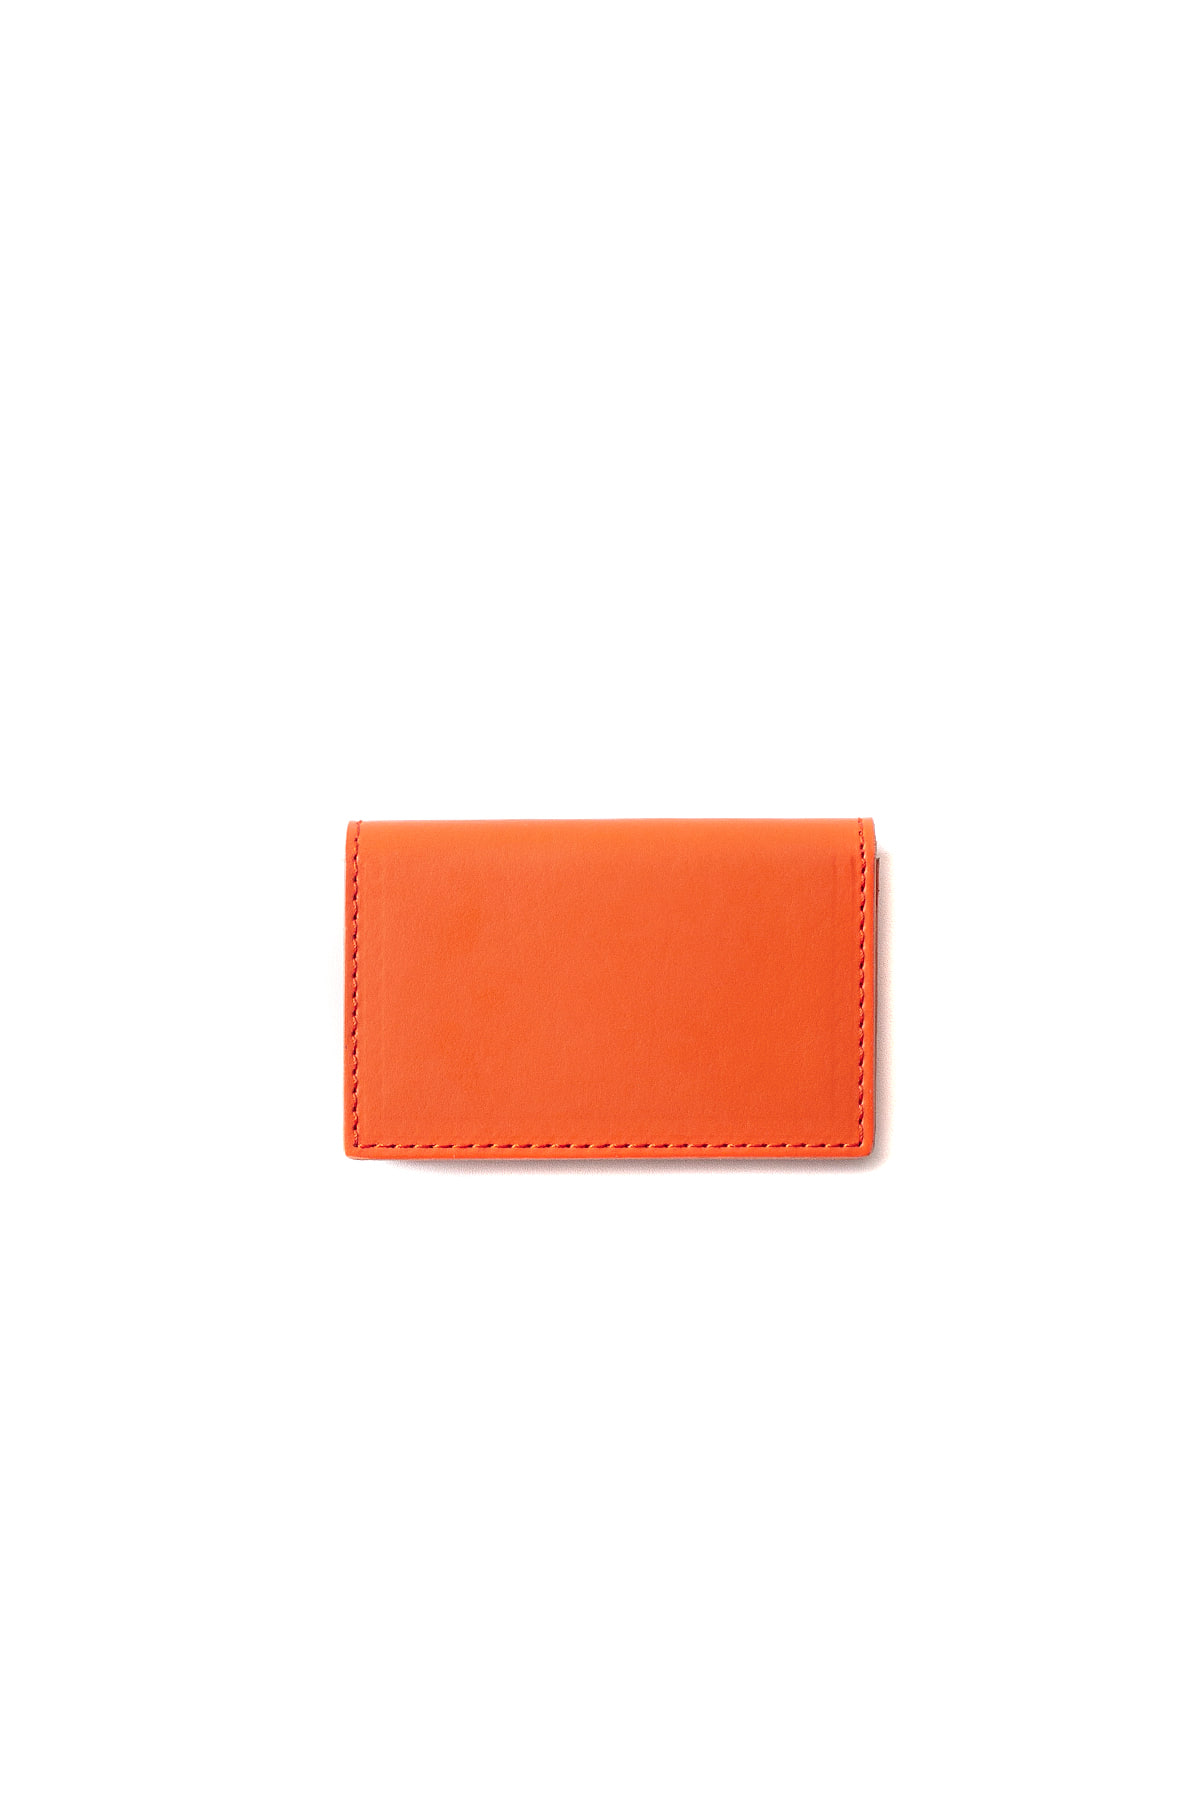 Hender Scheme : Folded Card Case (Orange)